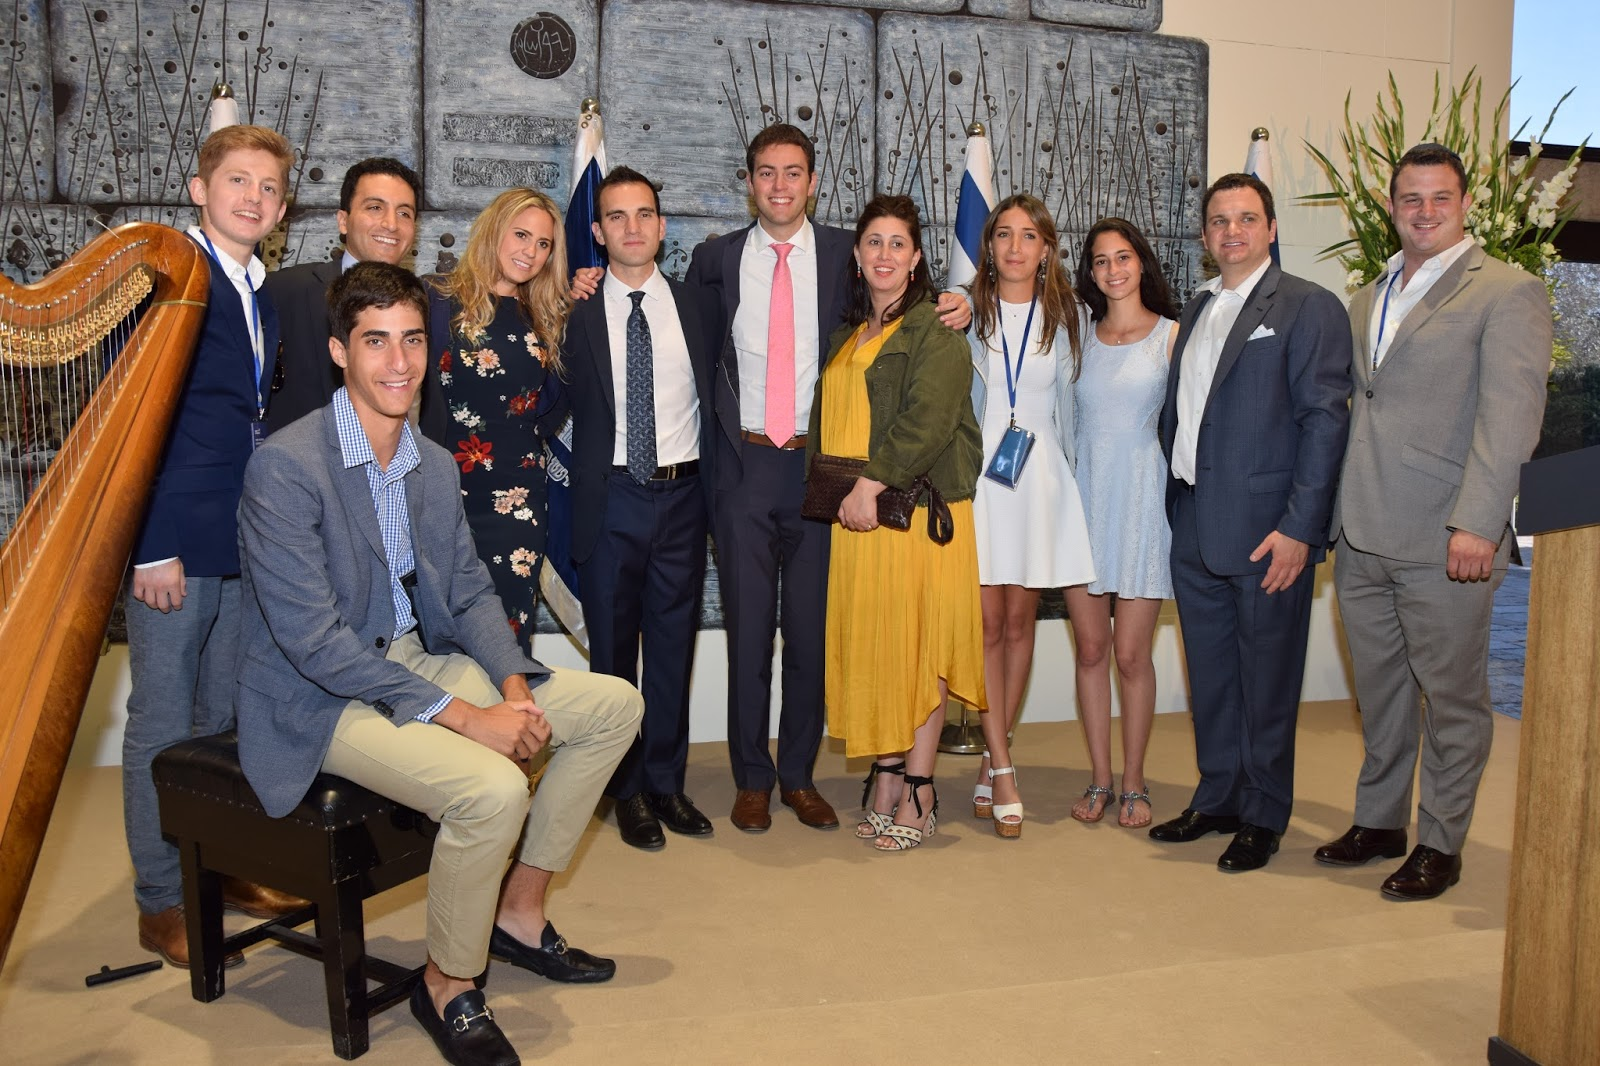 Yad Vashem Leadership Mission participants at a reception held at the President's Residence in Jerusalem. (July 2016)